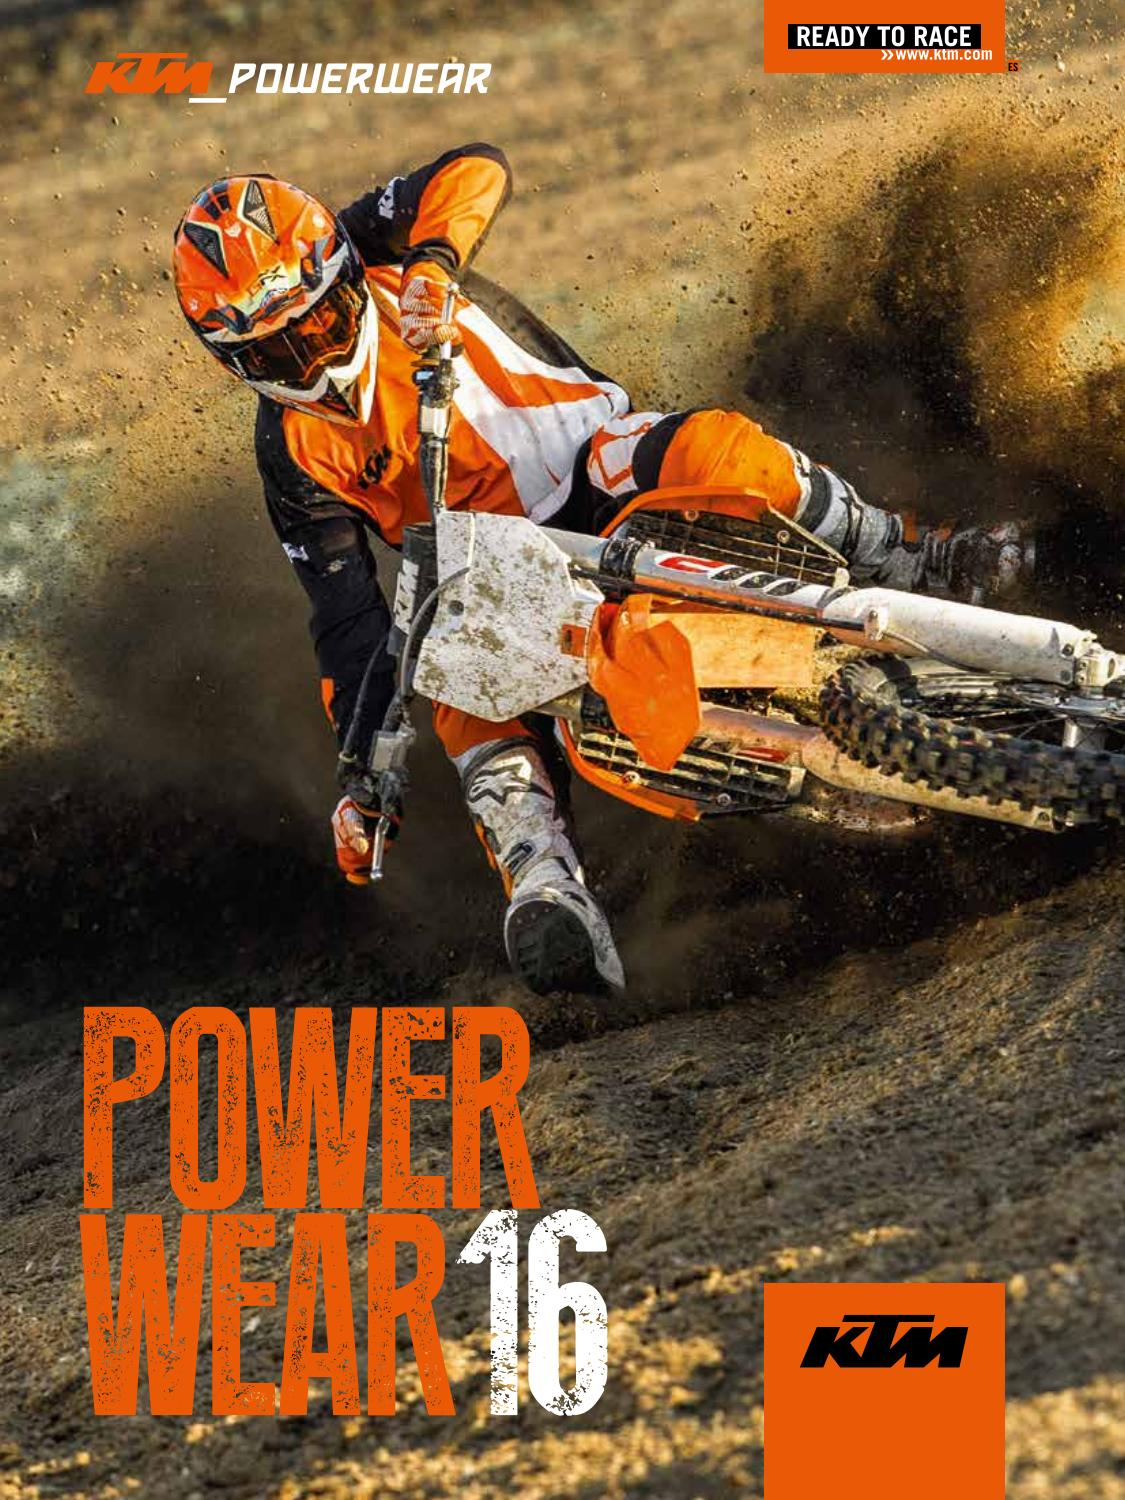 Race Sillas Bebe 2019 Catálogo Ktm Powerwear 2016 By Secomoto Ktm Madrid Issuu